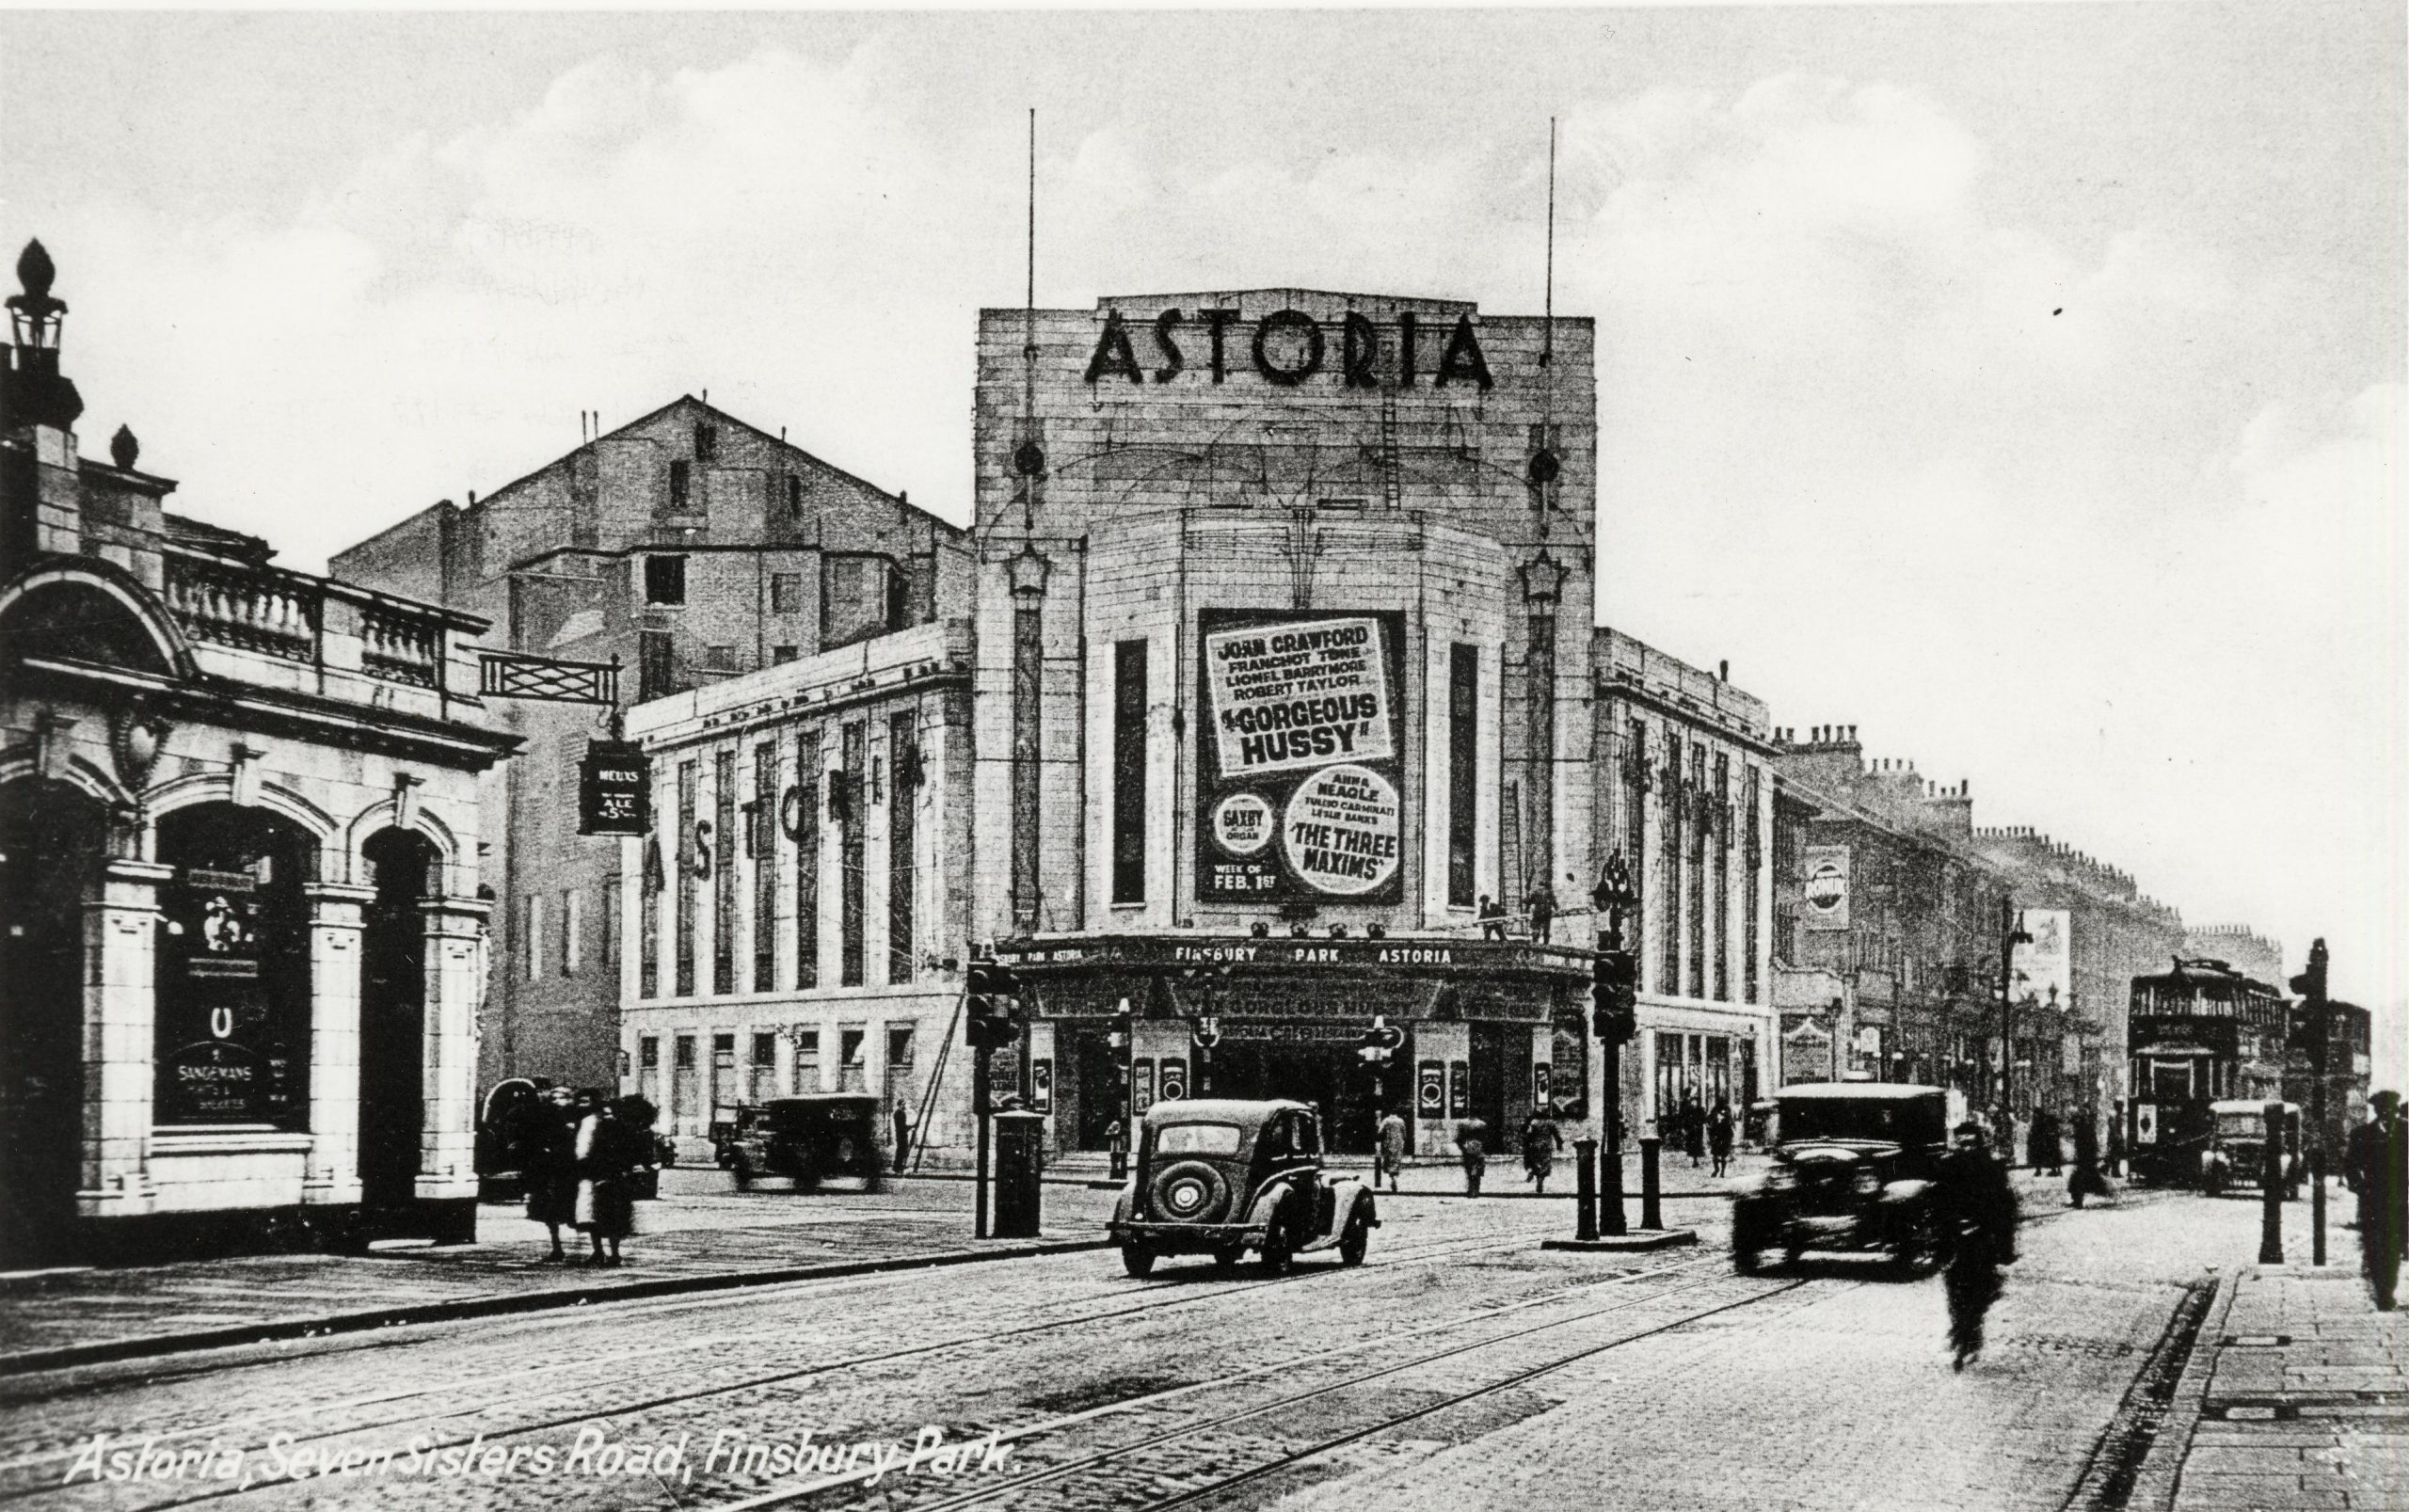 Stop 10 - Astoria Cinema In 1936, Later Rainbow Theatre And Now UCKG Help Centre, Islington Local History Centre